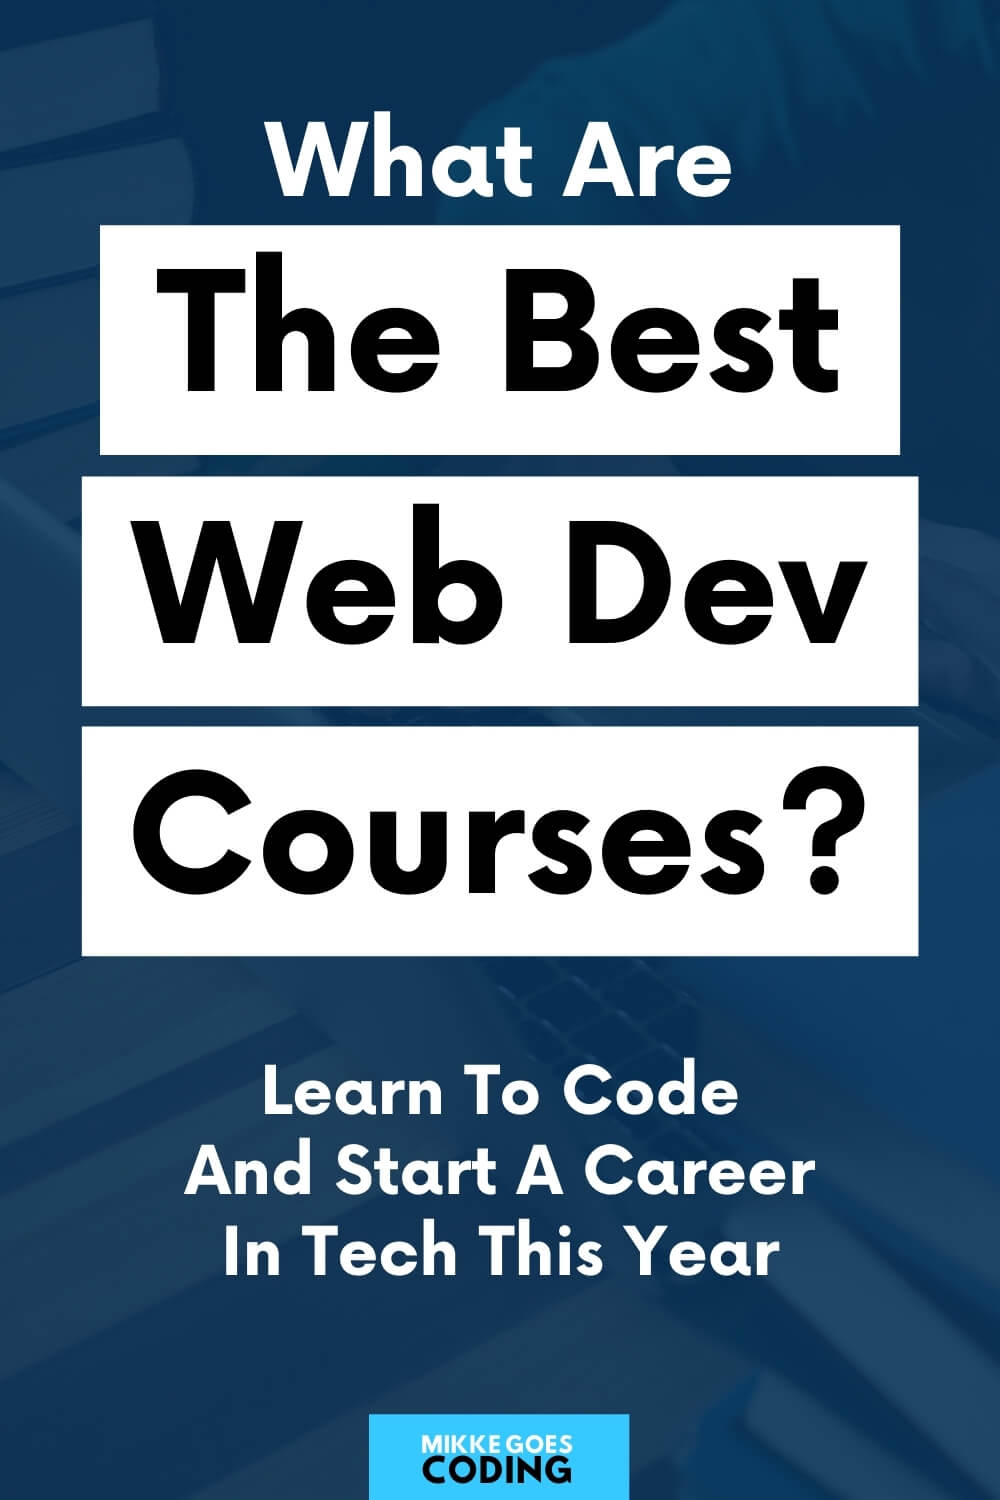 The best web development courses for beginners - 27 top tutorials and guides